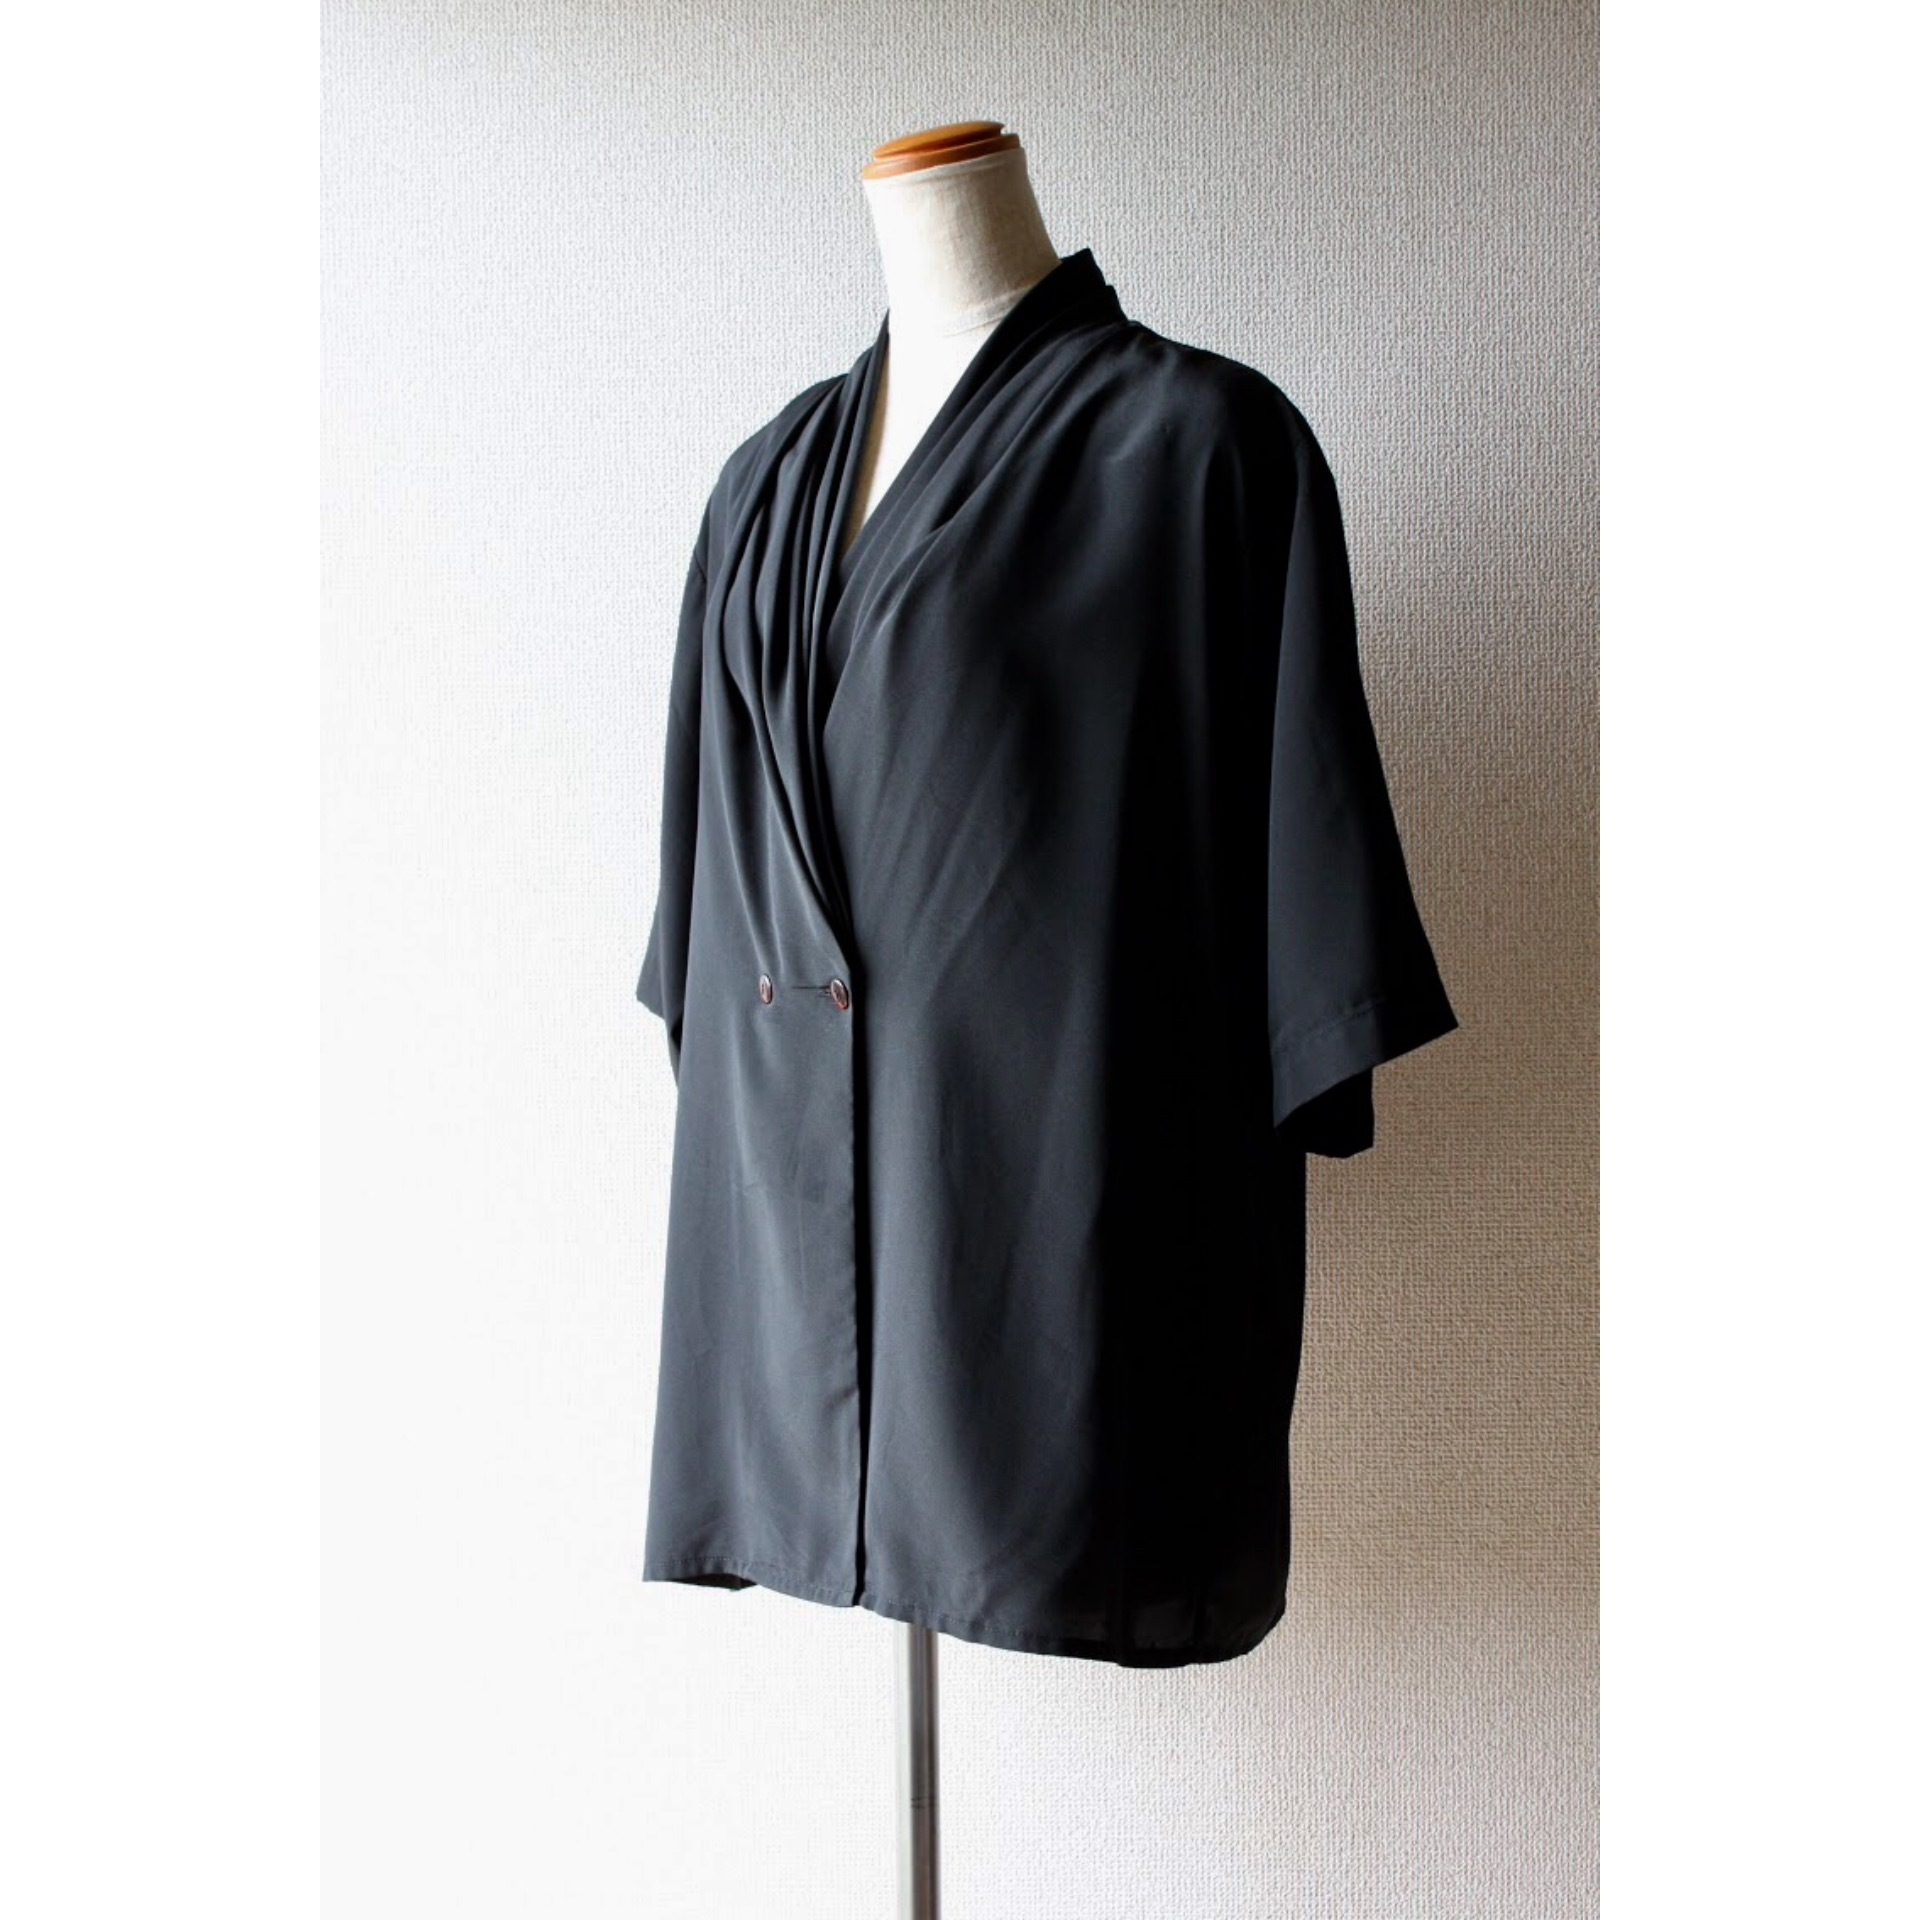 Vintage folds collar shirt